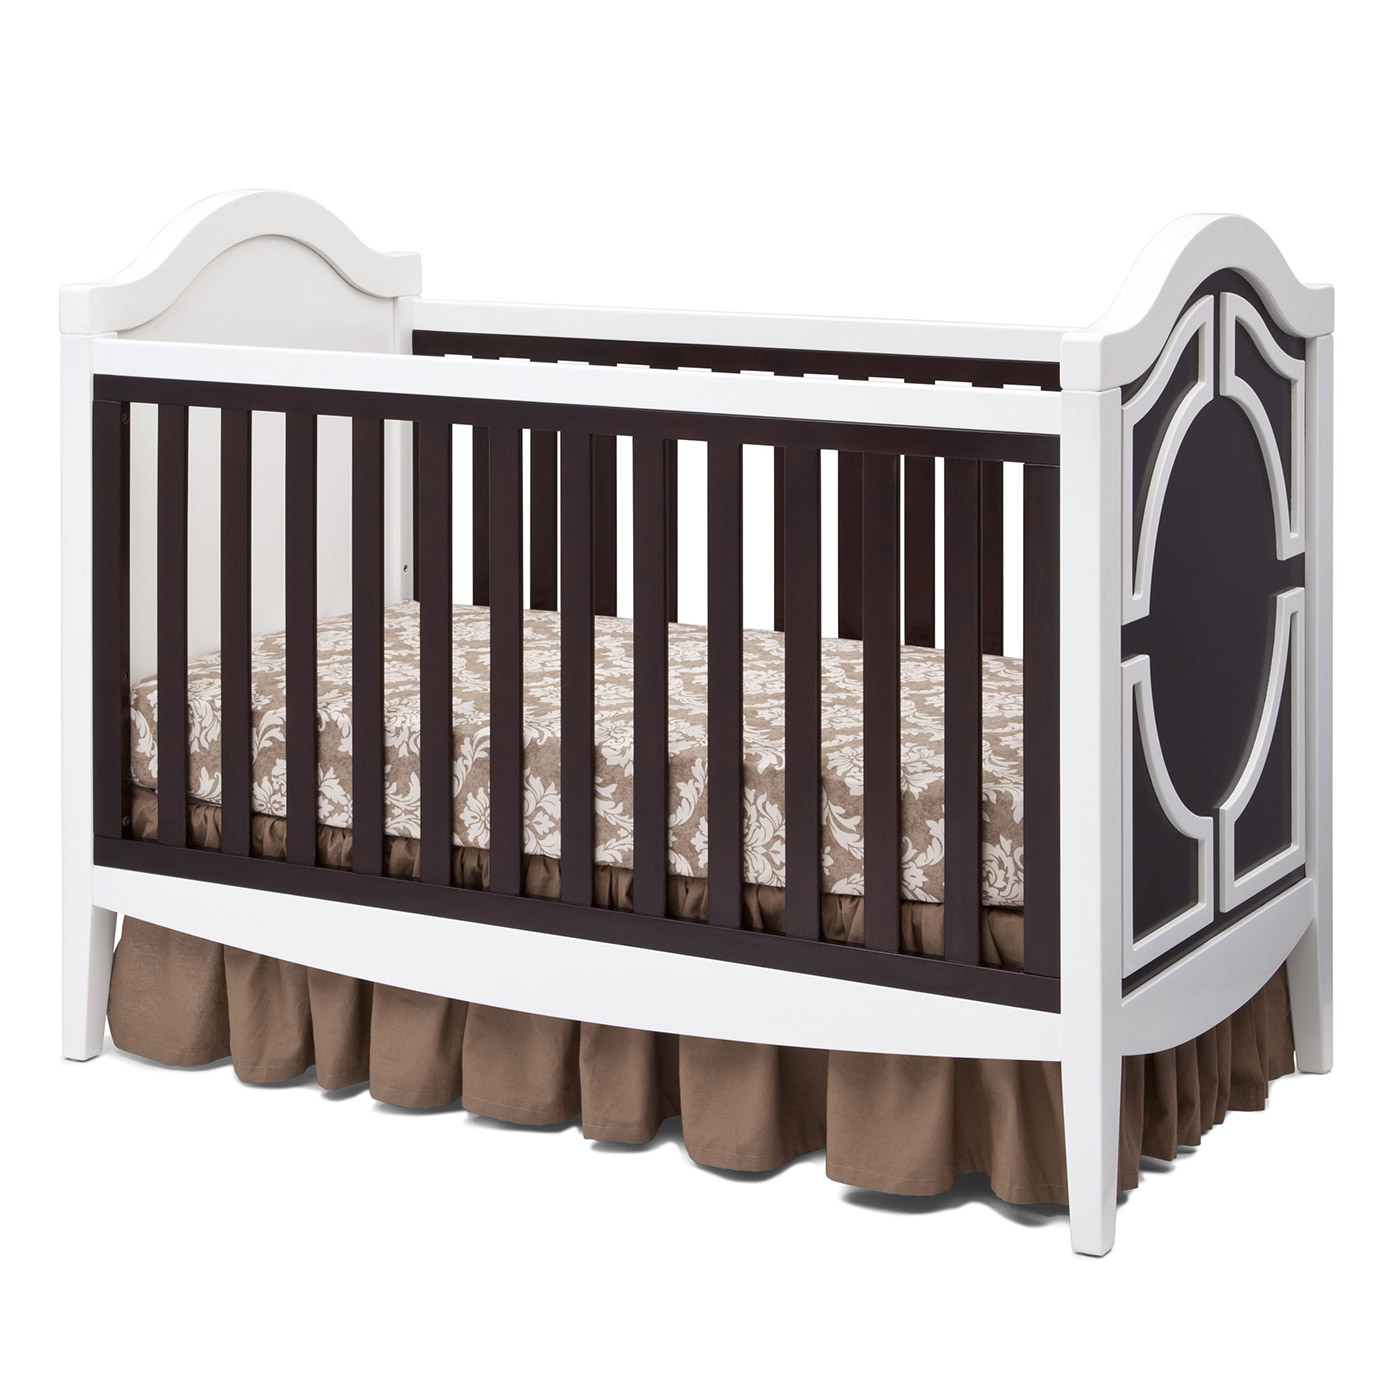 Used crib for sale ottawa - Simmons Hollywood 3 In 1 Crib In White Dark Chocolate